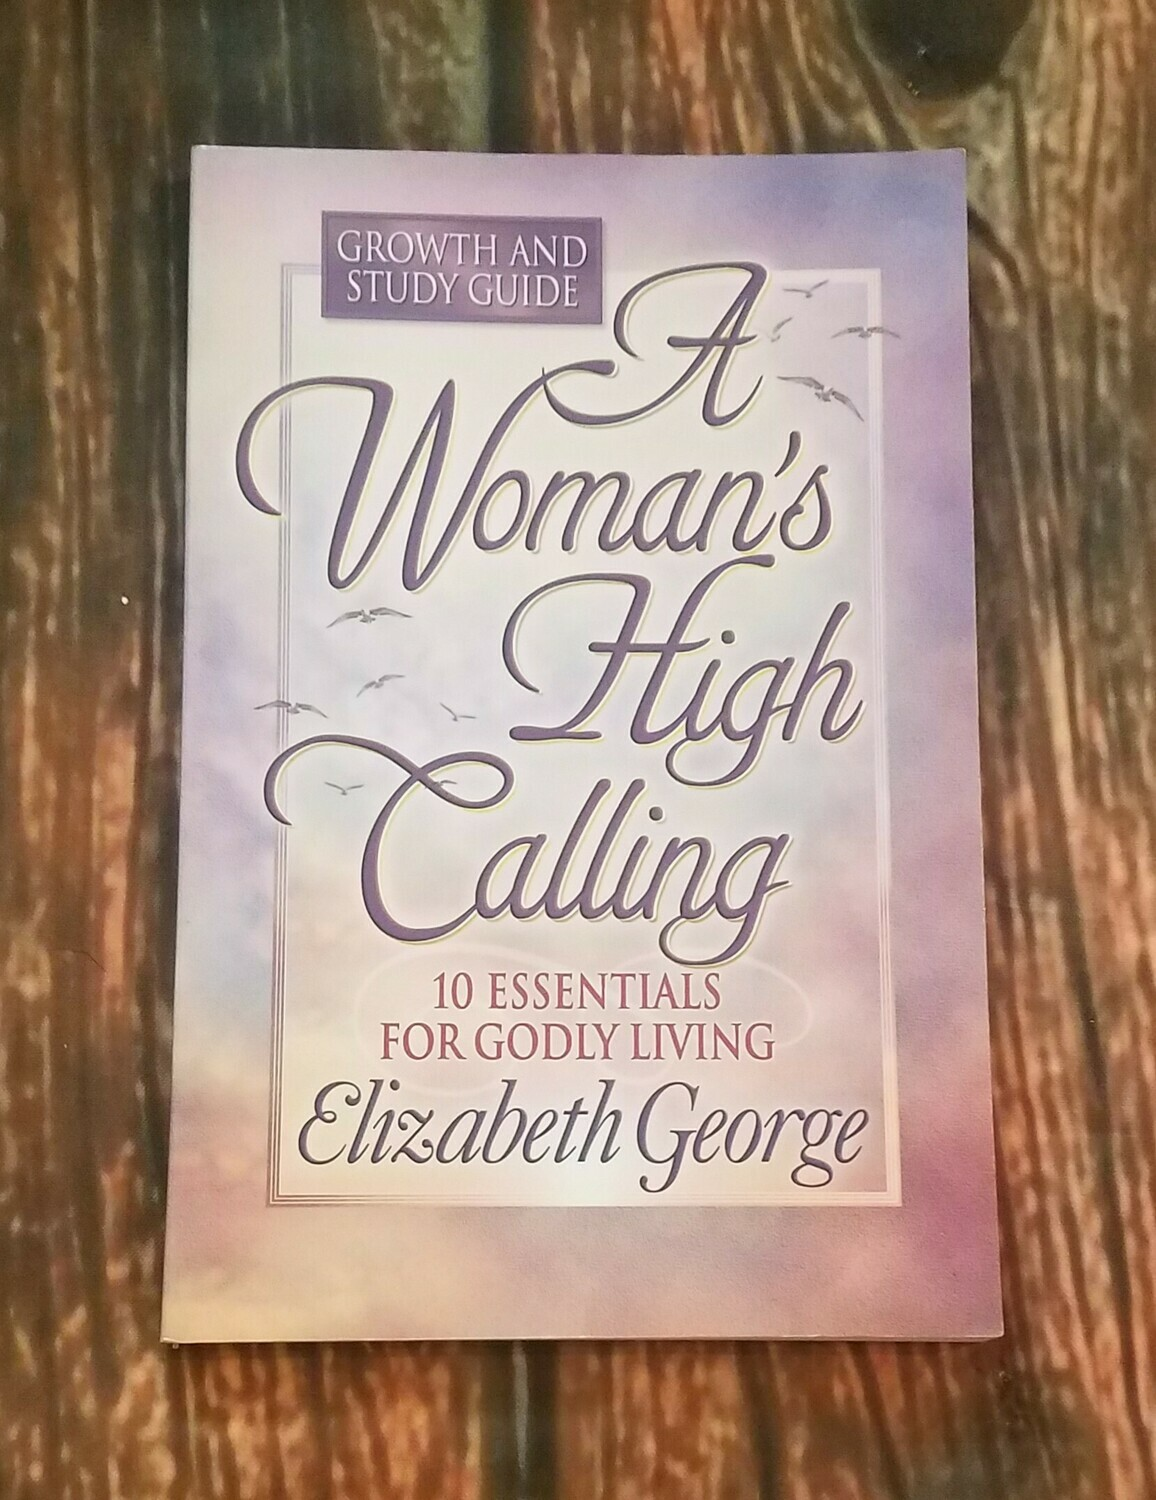 A Woman's High Calling  - Growth and Study Guide by Elizabeth George